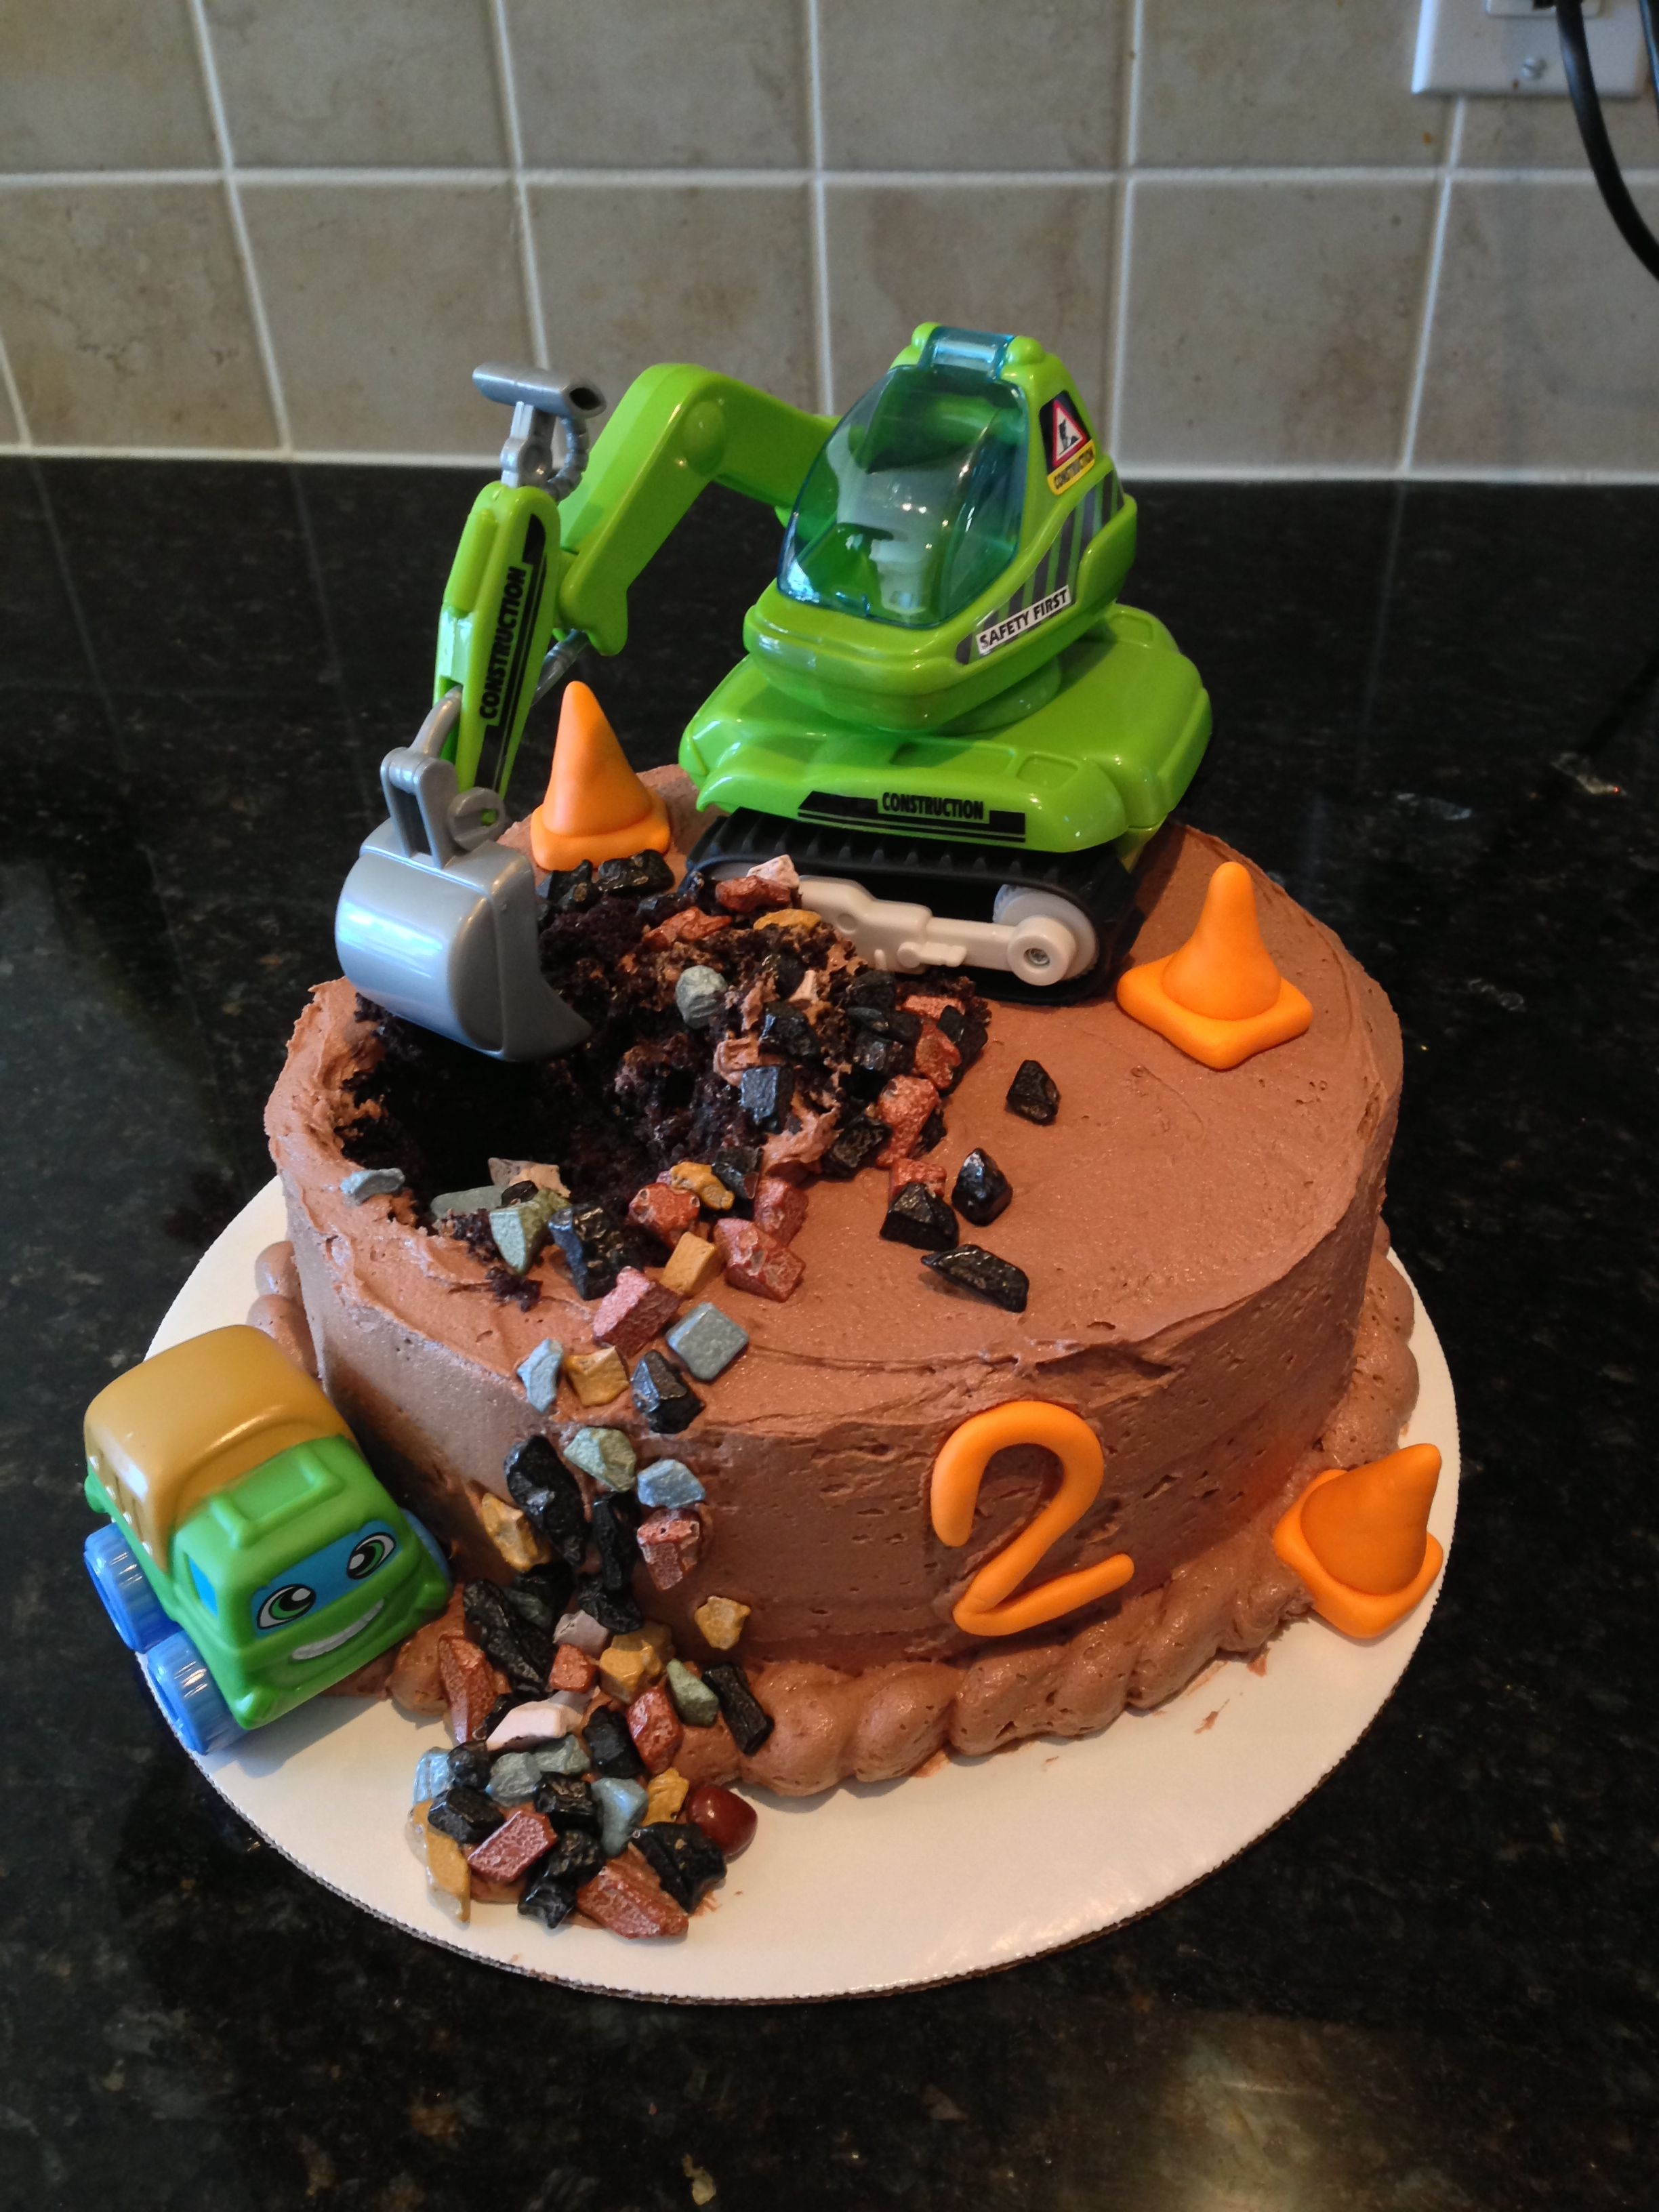 Construction Truck Cake For 2 Year Old Boy Themed Party Chocolate With Buttercream Icing Pebbles